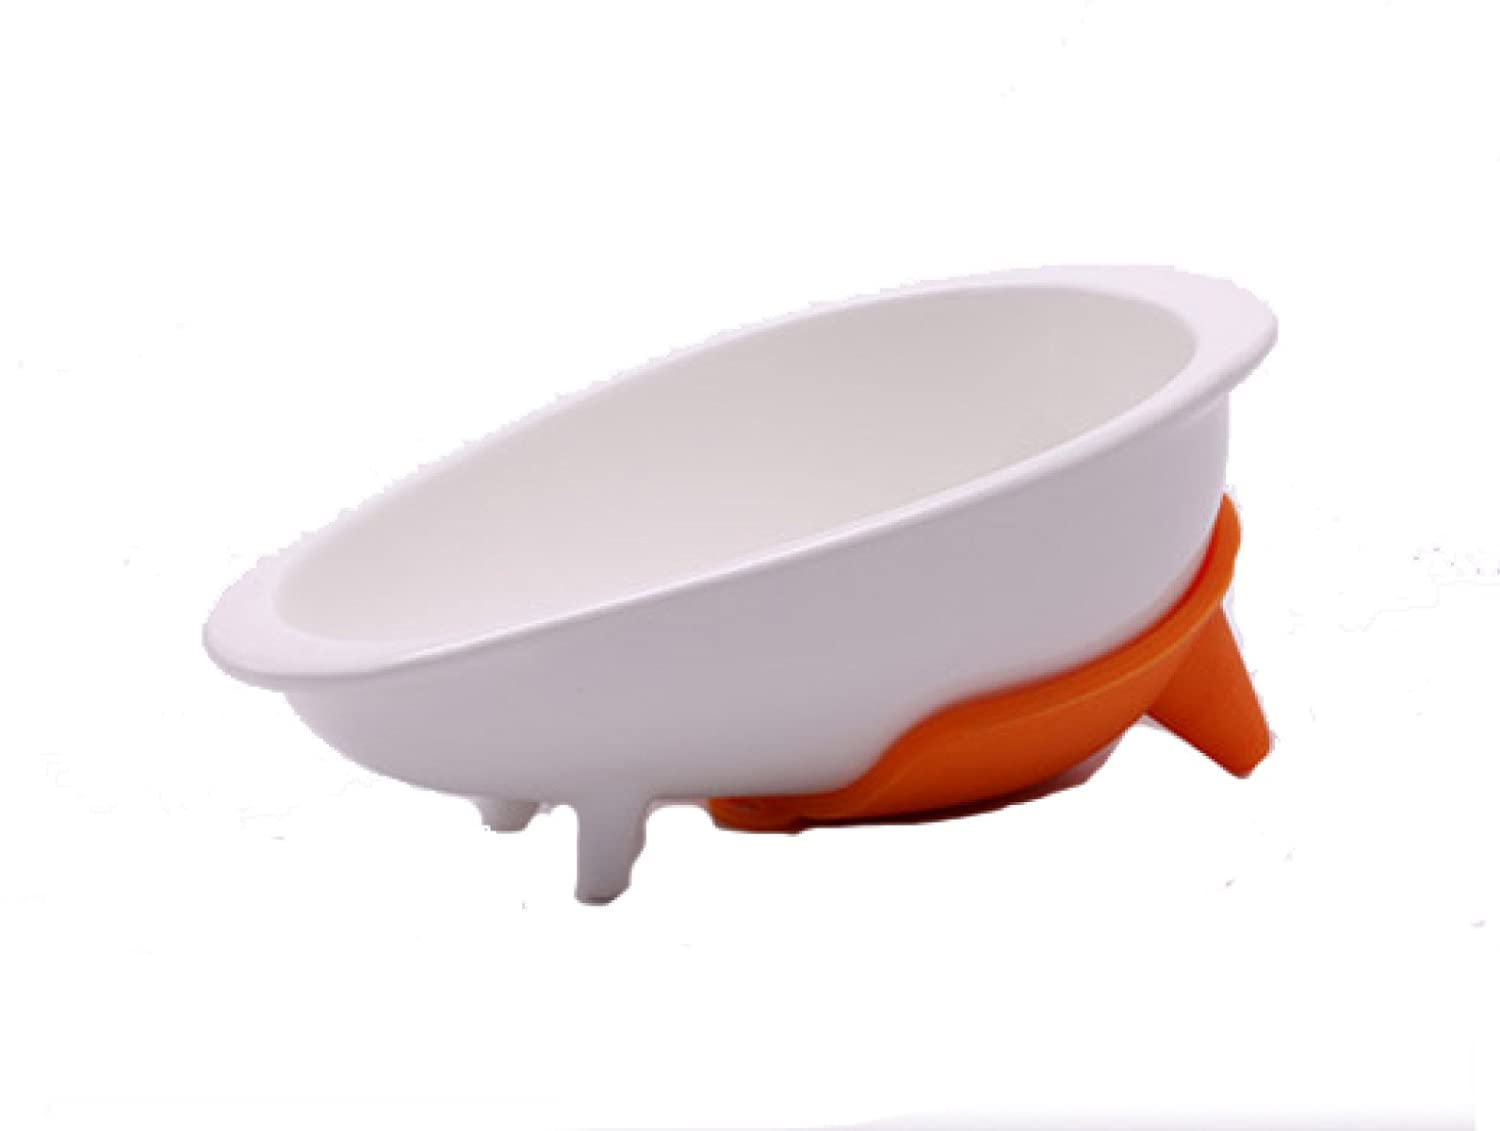 Ceramic Dog Feeding Bowl Anti-slip Rubber Base For Dogs Especially Dachshund 21.5  11  7.8 Cm